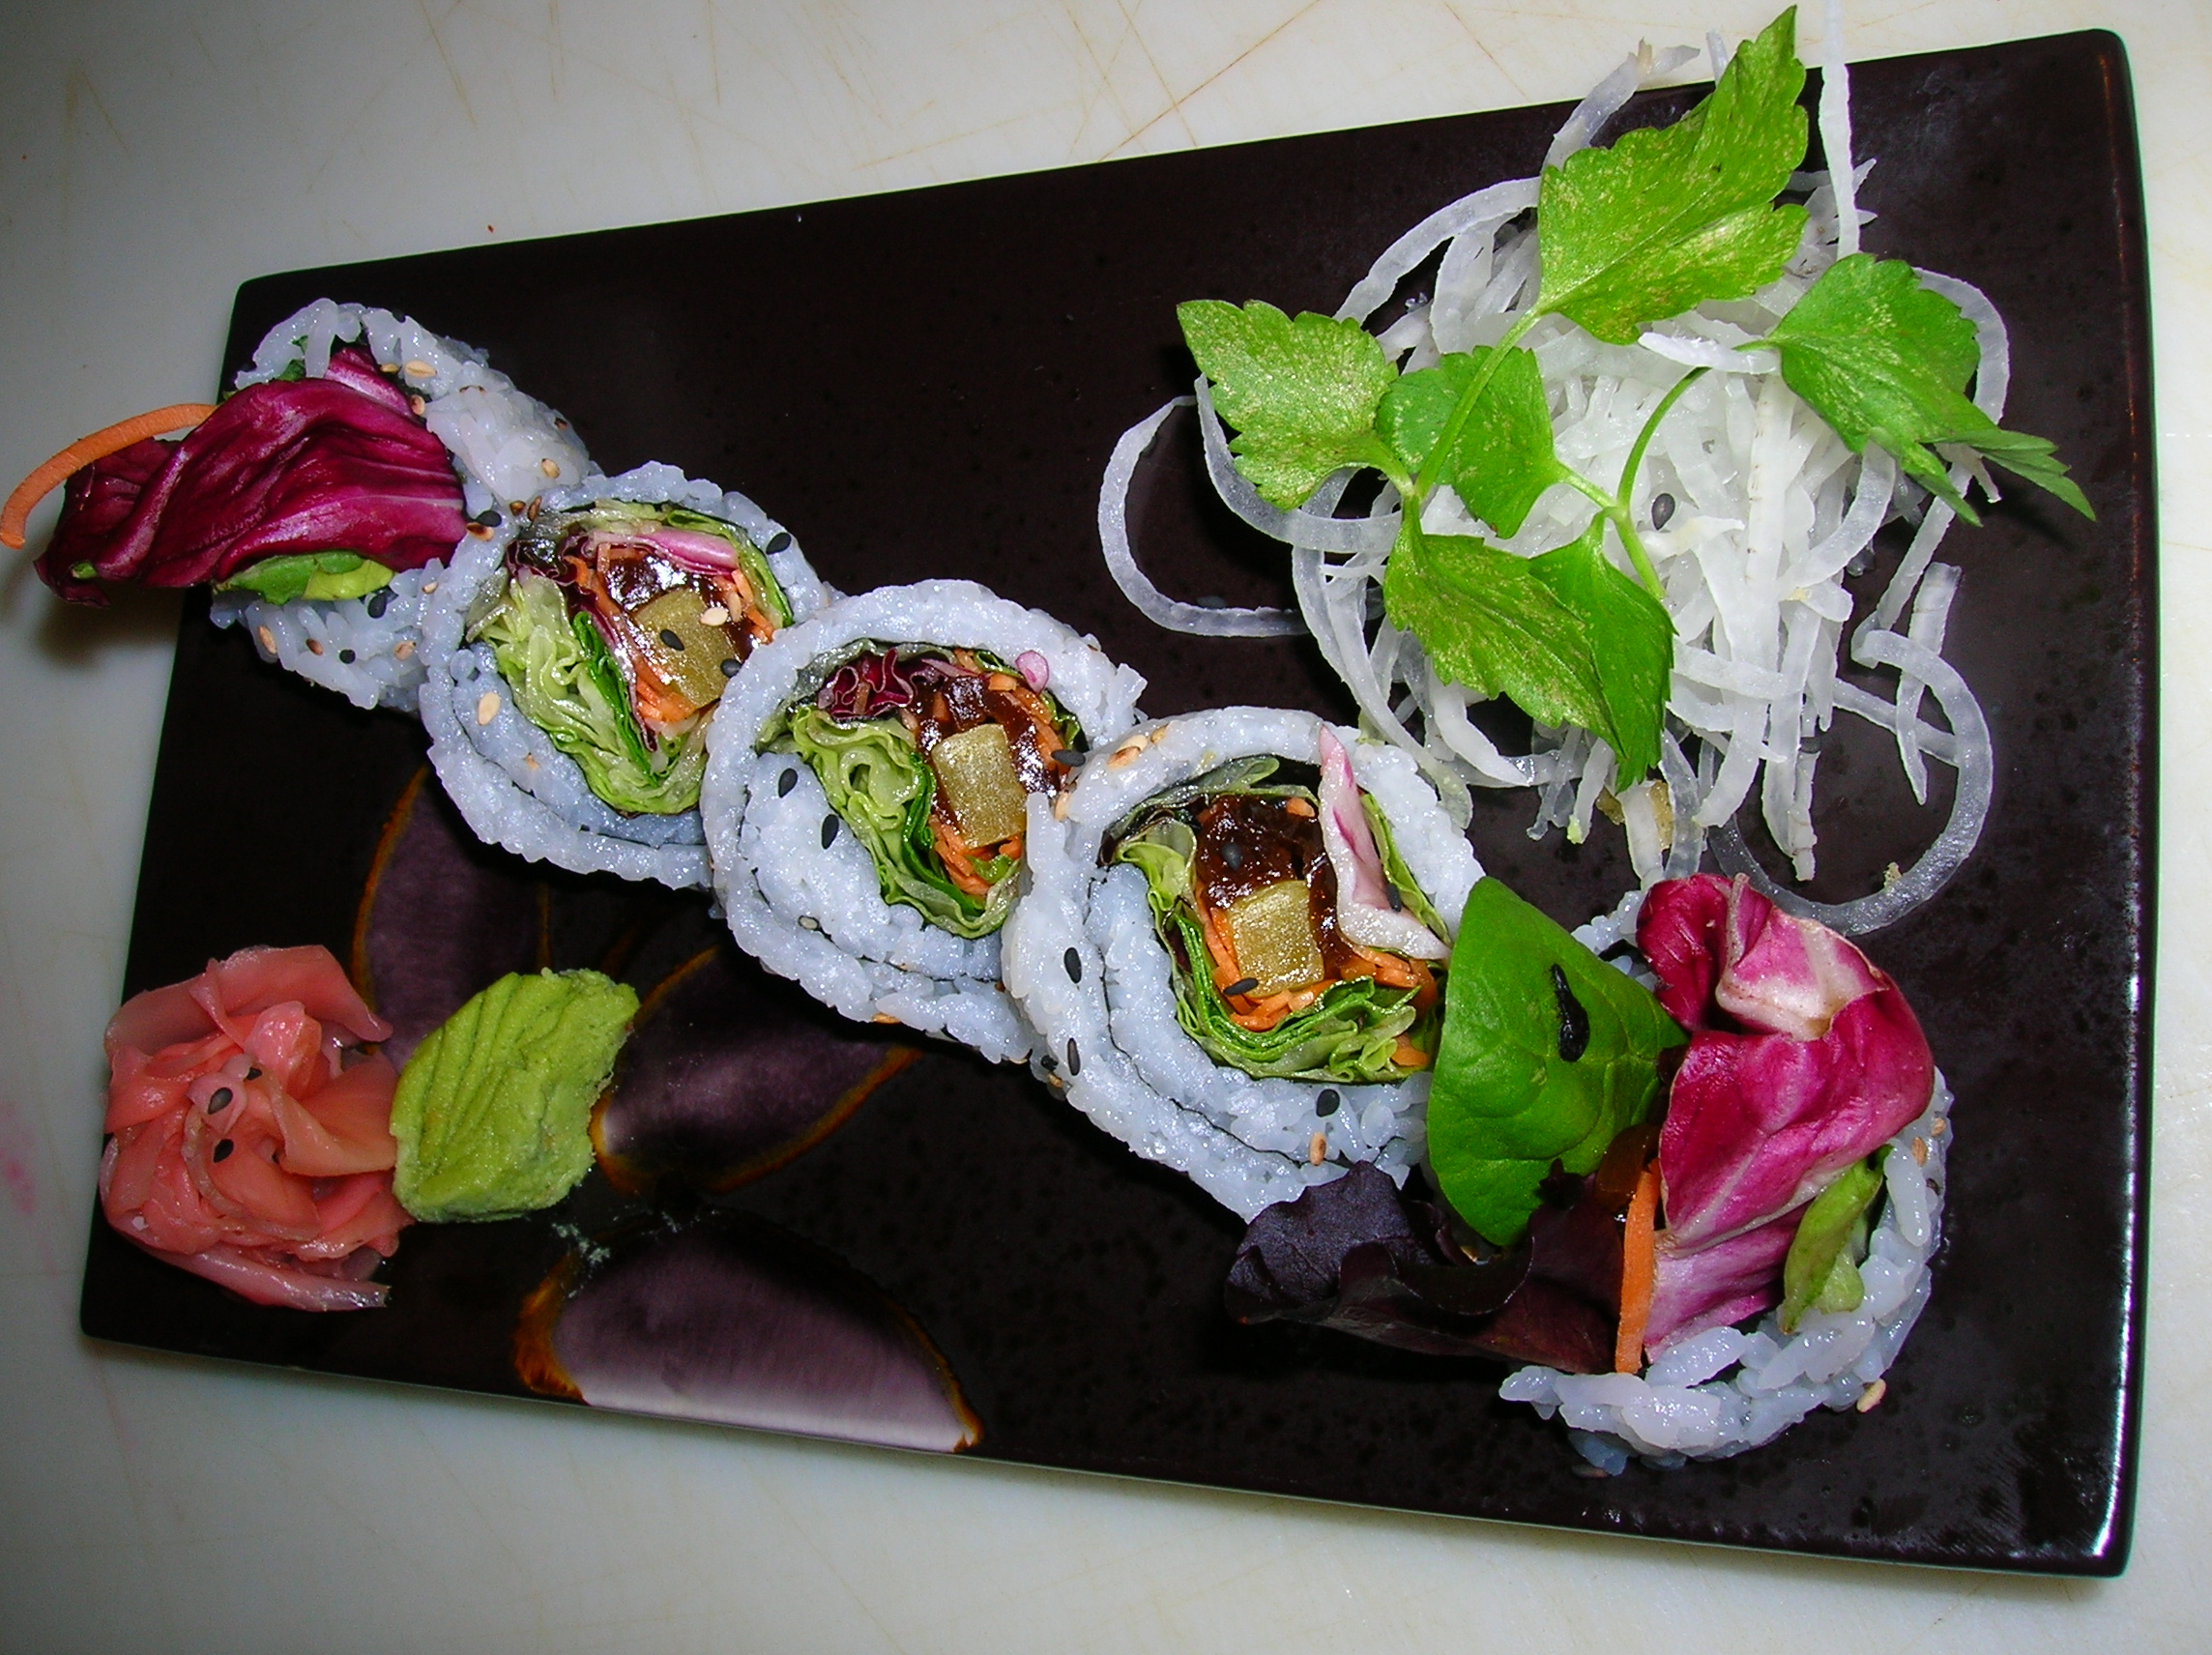 Vegetable Roll Image